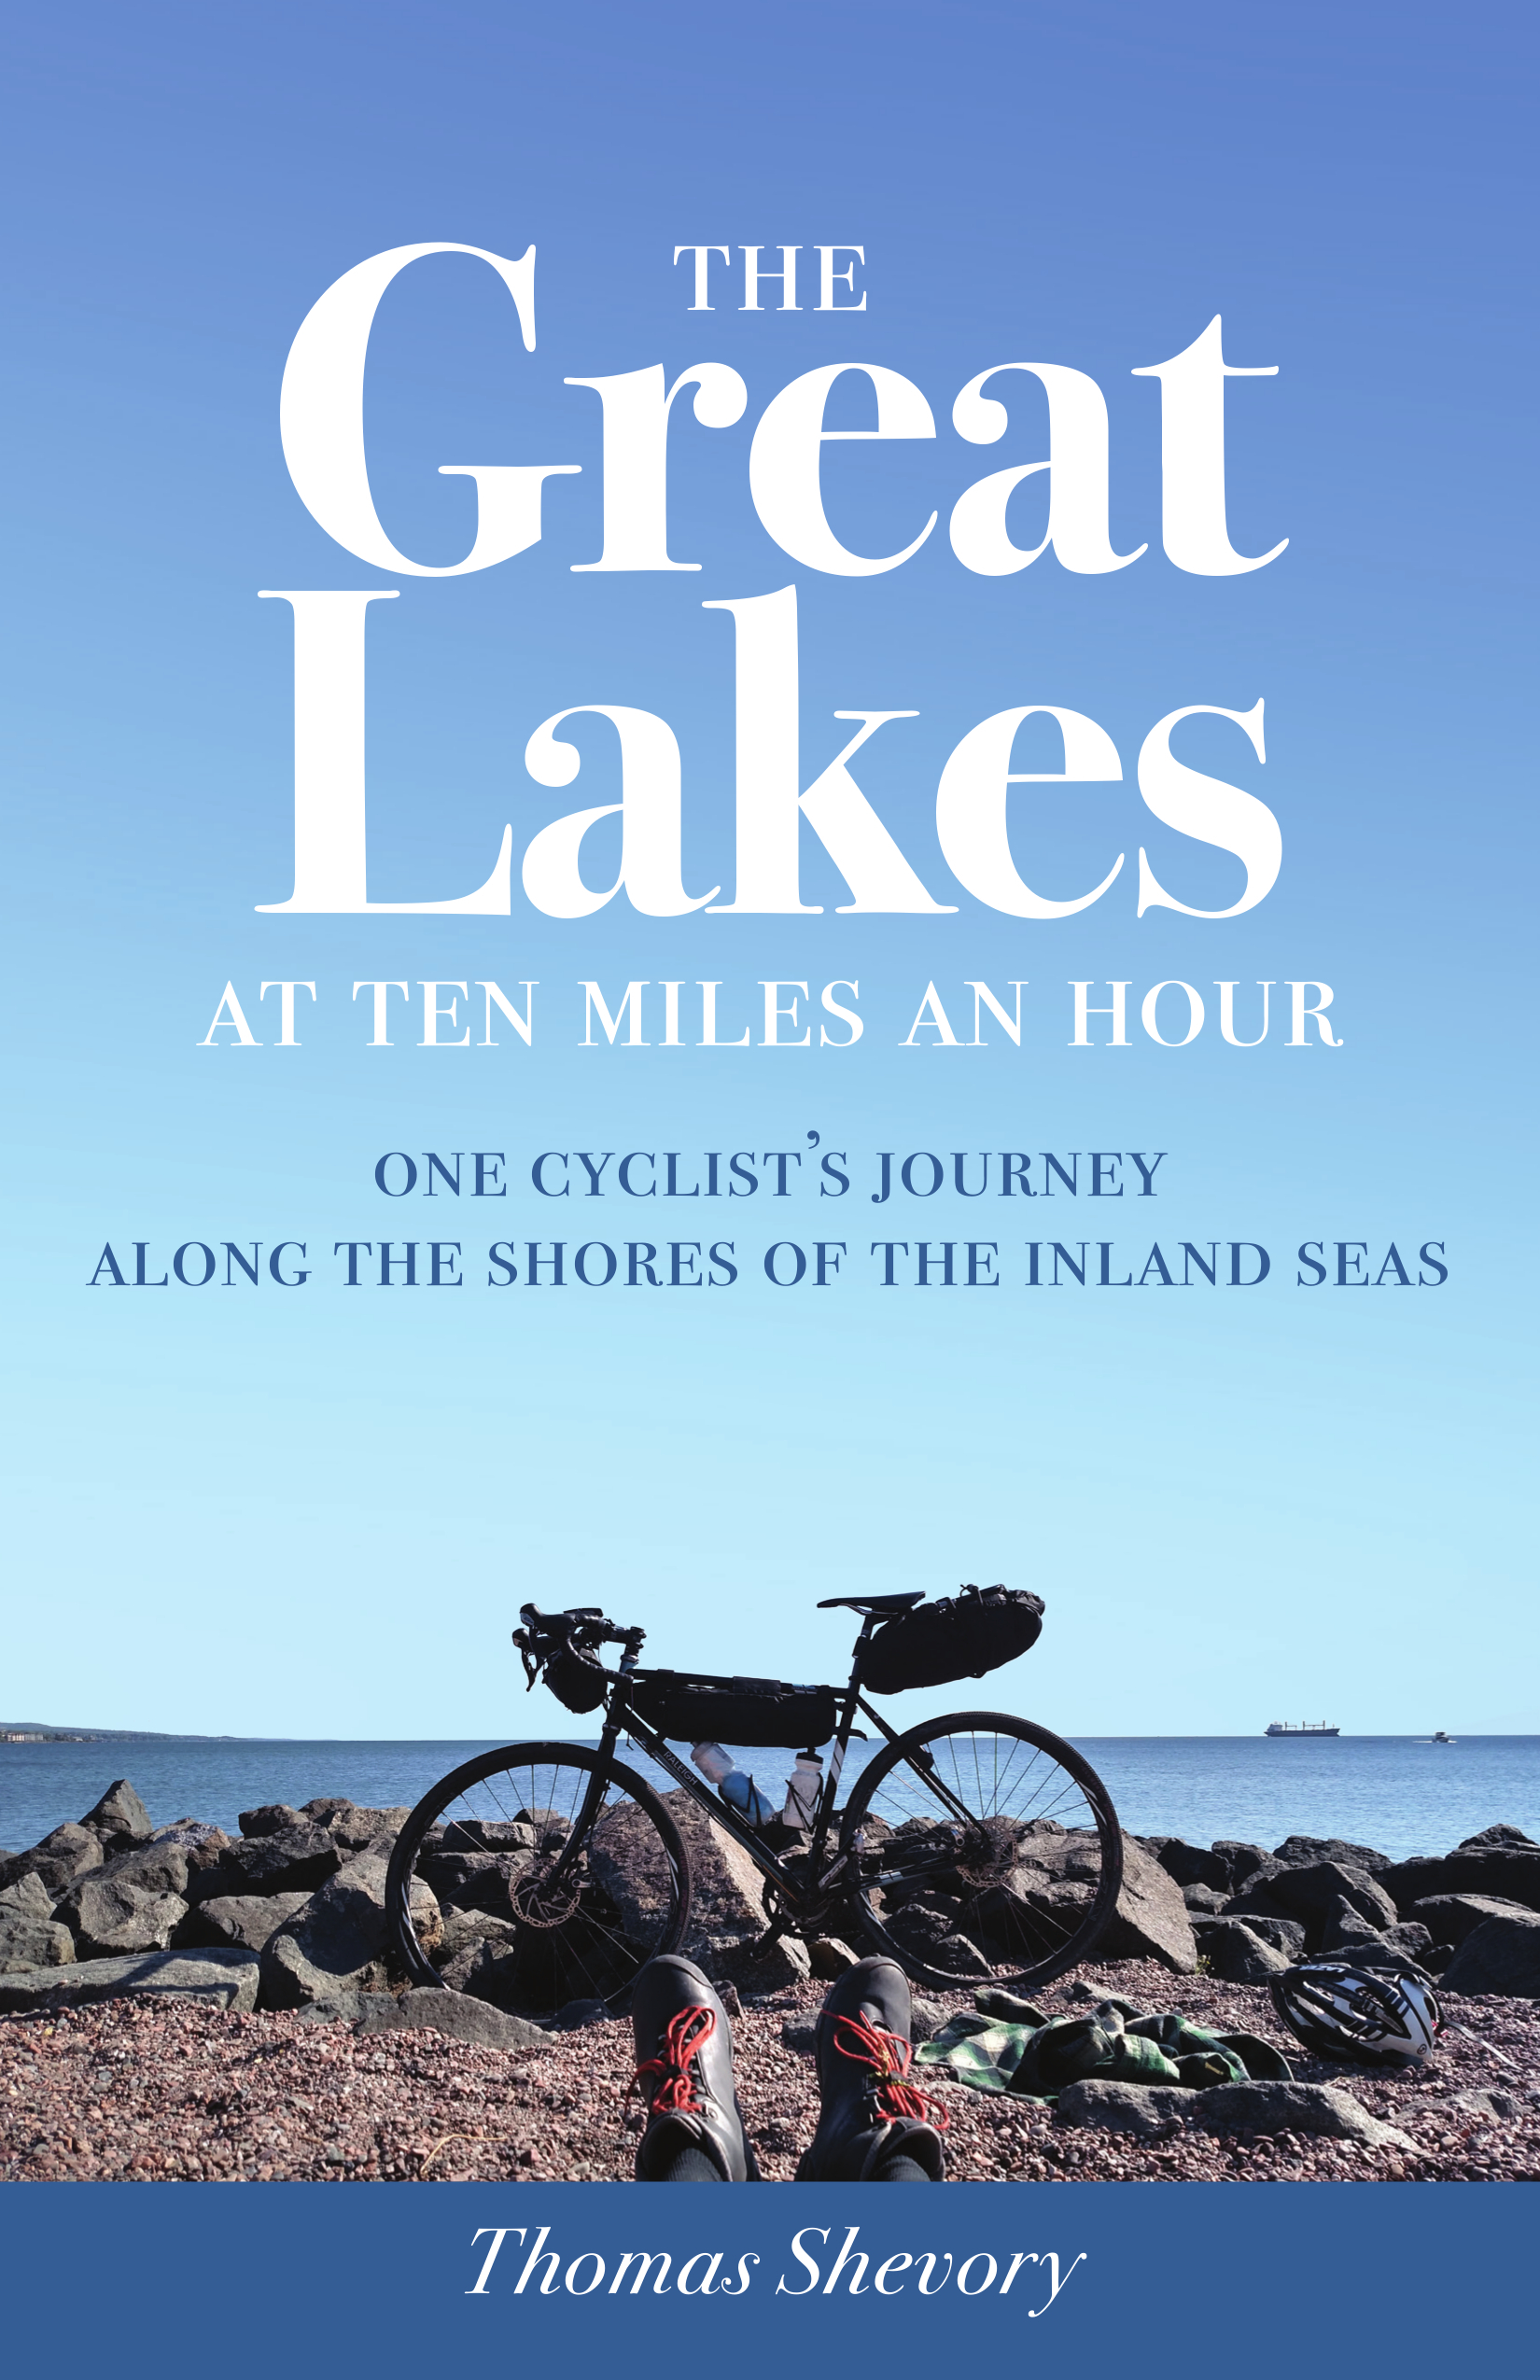 The Great Lakes at Ten Miles an Hour One Cyclist's Journey along the Shores of the Inland Seas